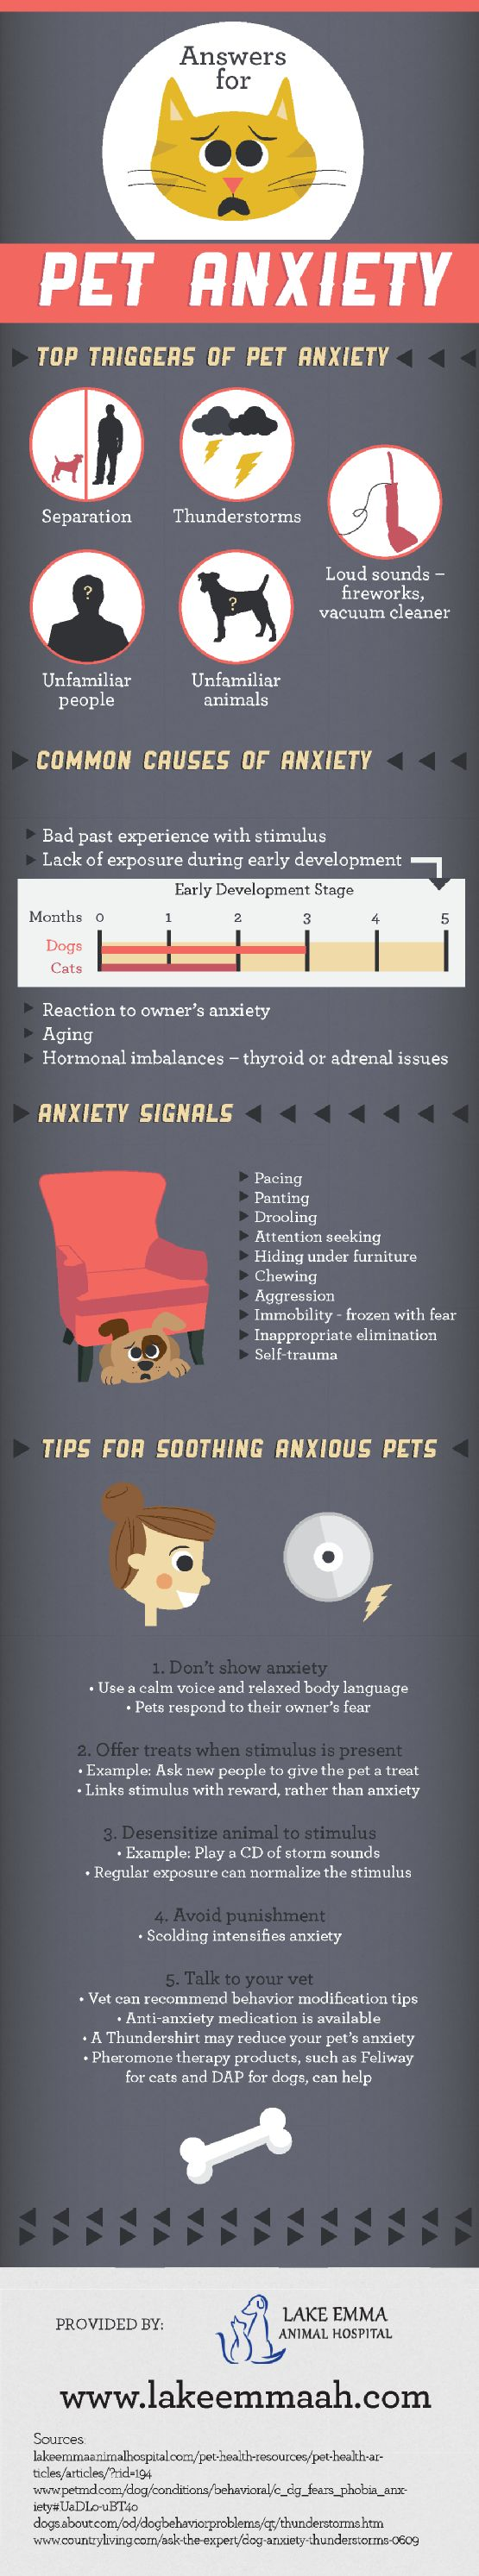 When owners are anxious, their pets may also become anxious! Using a calm voice and relaxed body language is essential for calming a pet